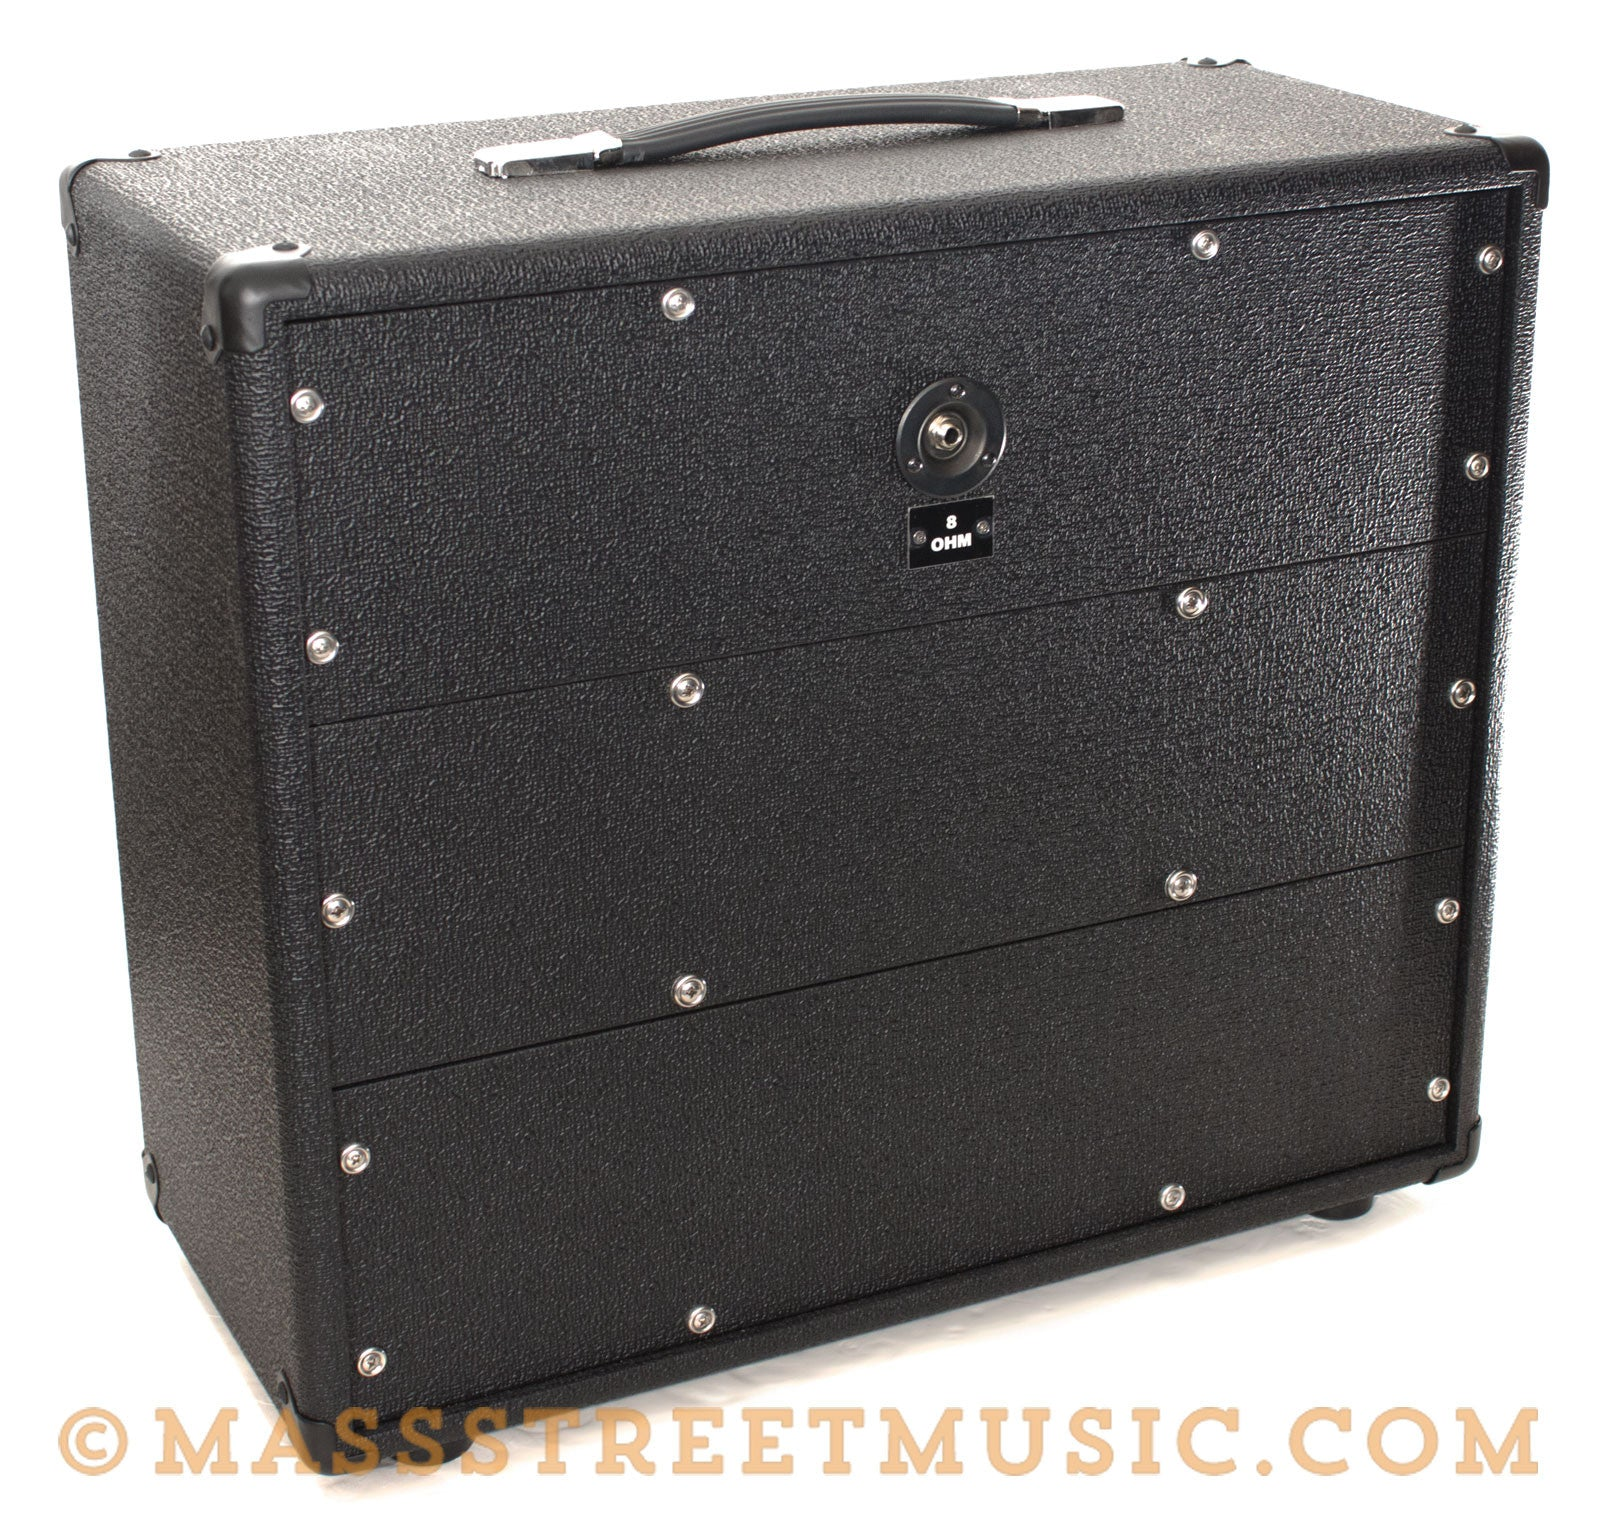 Dr Z 1x12 Cab Salt Pepper Guitar Amplifier Mass Street Music Store Wiring Cabinet Back Angle